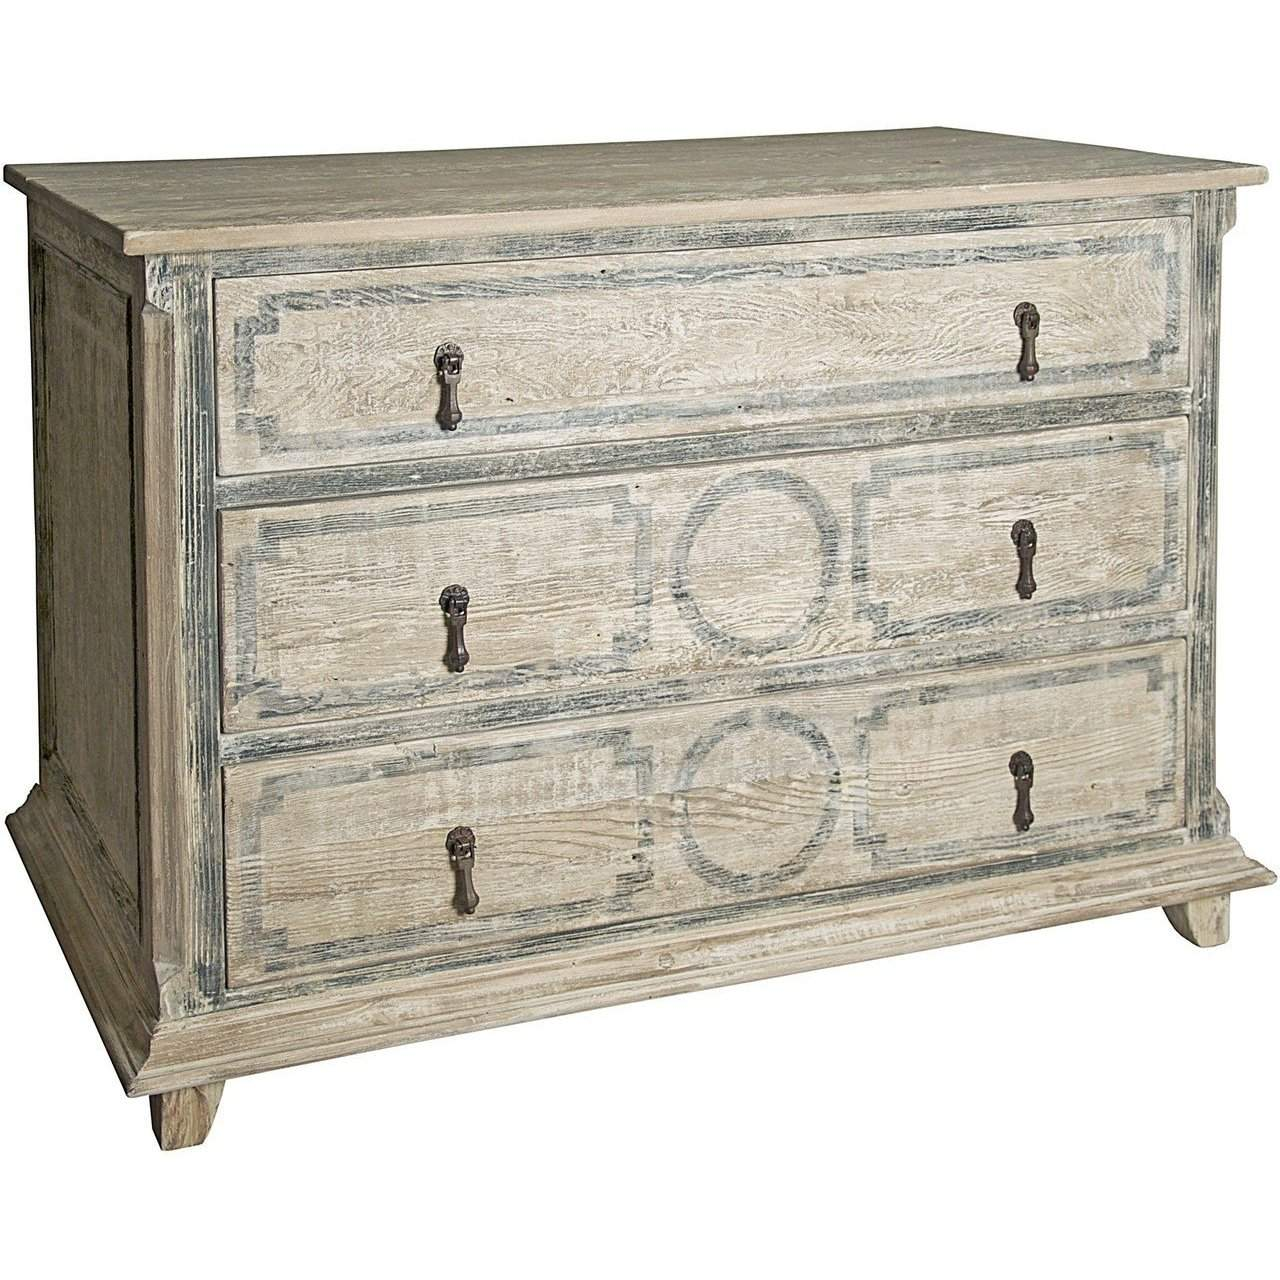 CFC Furniture Reclaimed Lumber Livingston 3-drw RL Dresser